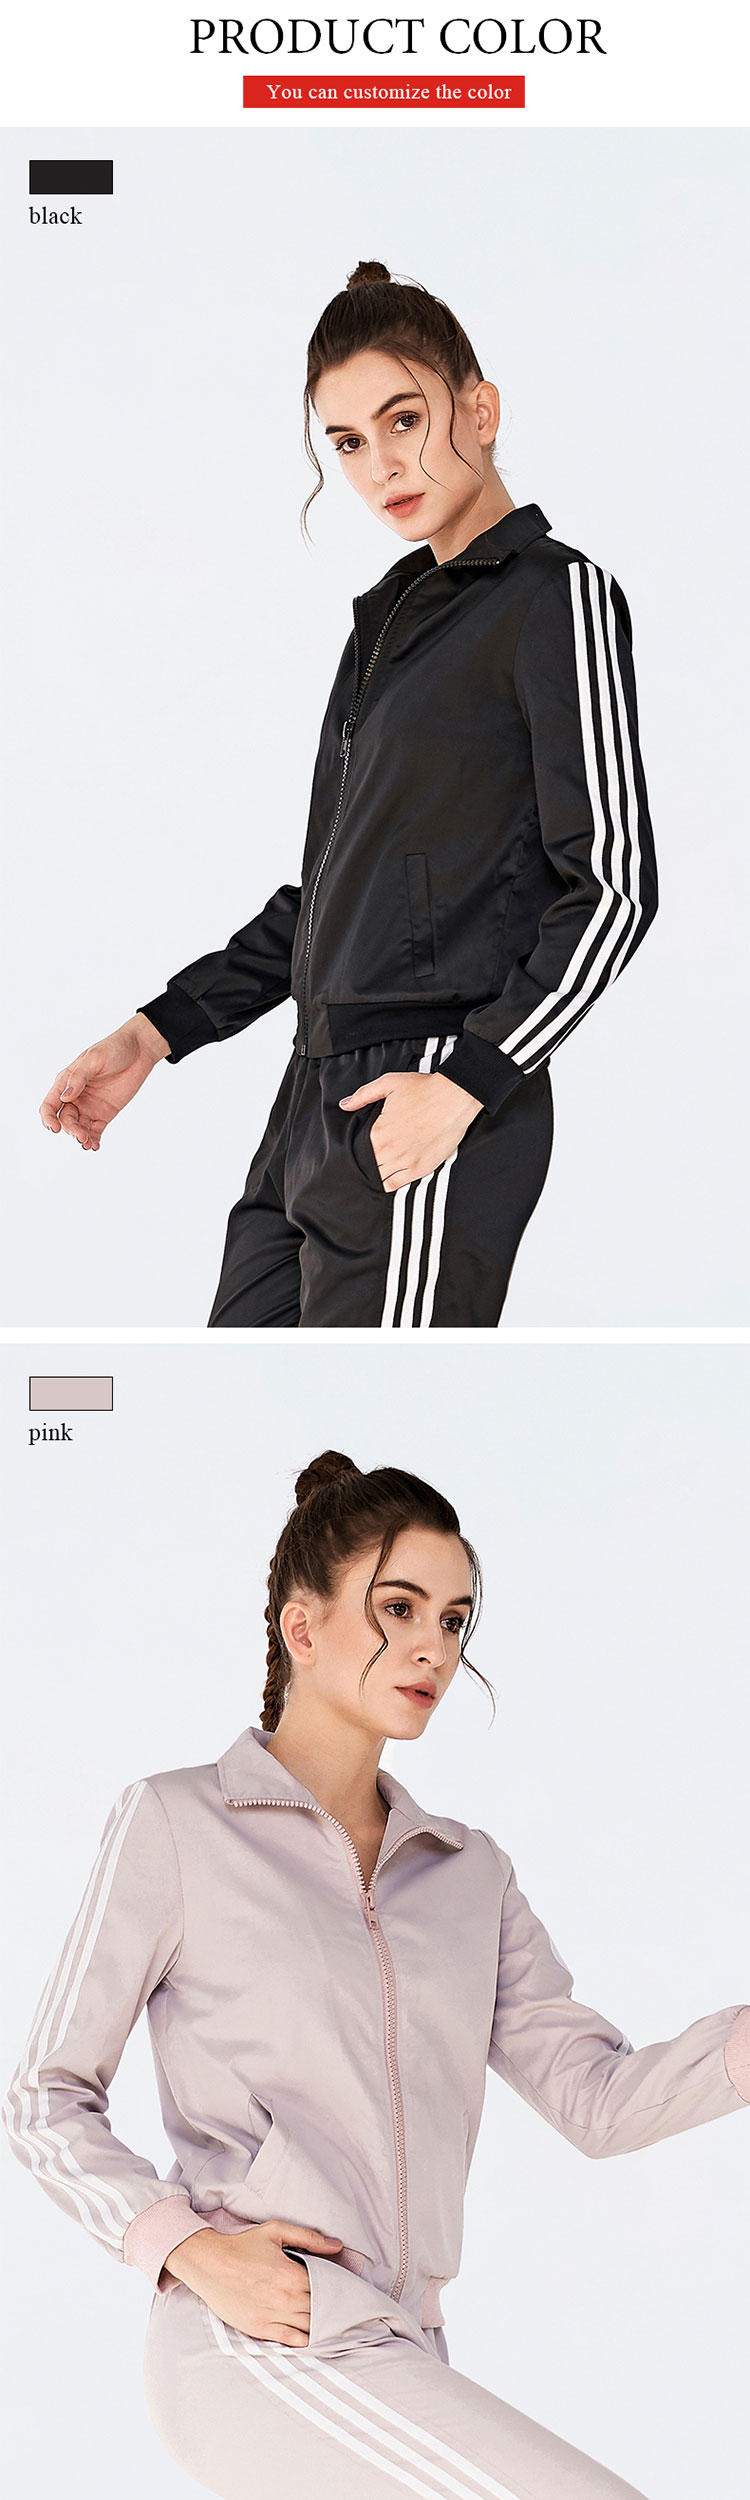 Quality-we-have-produced-yoga-clothes-for-many-big-brands